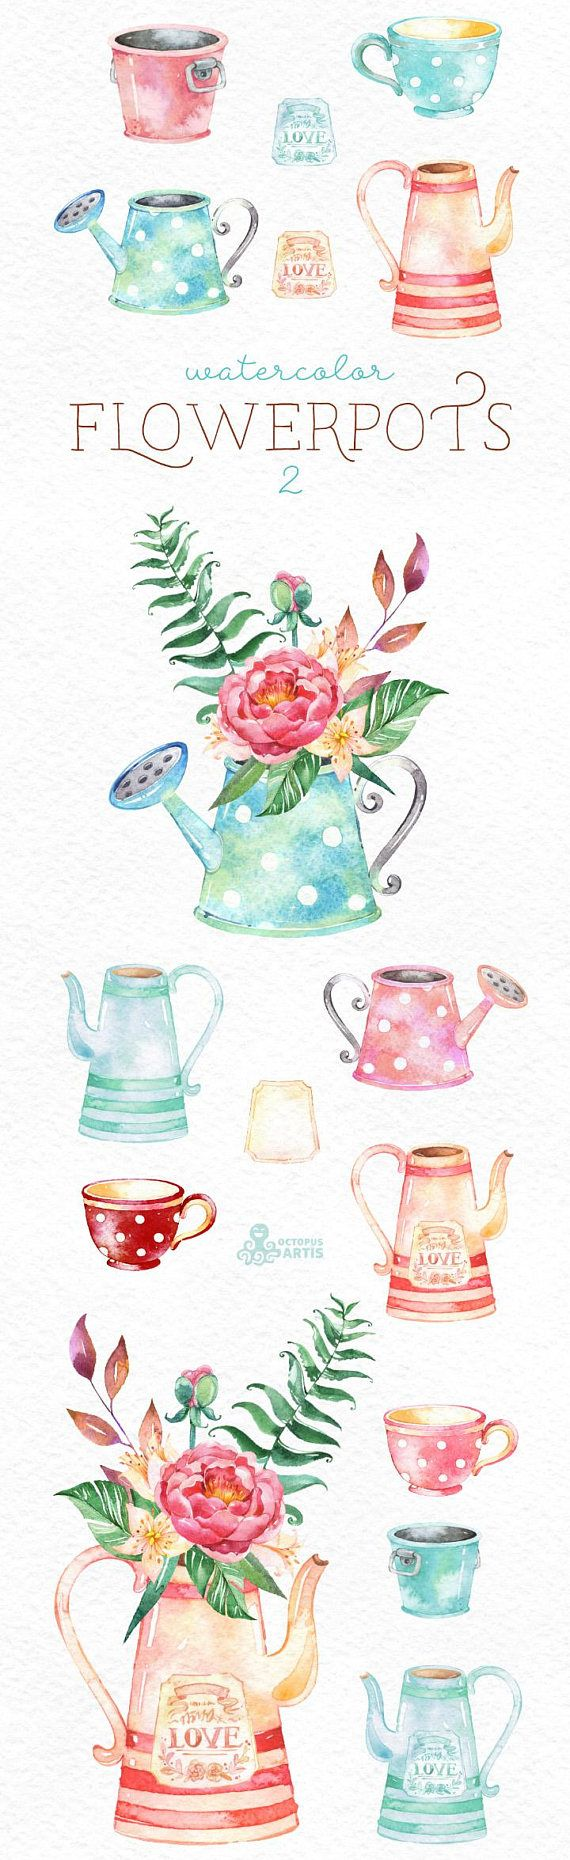 This Watercolor Flowerpots 2 set of hand painted watercolor images. Perfect graphic for diy projects, wedding invitations, greeting cards, photos, posters, quotes and more. ----------------------------------------------------------------- This listing includes: 16 x Images in PNG with